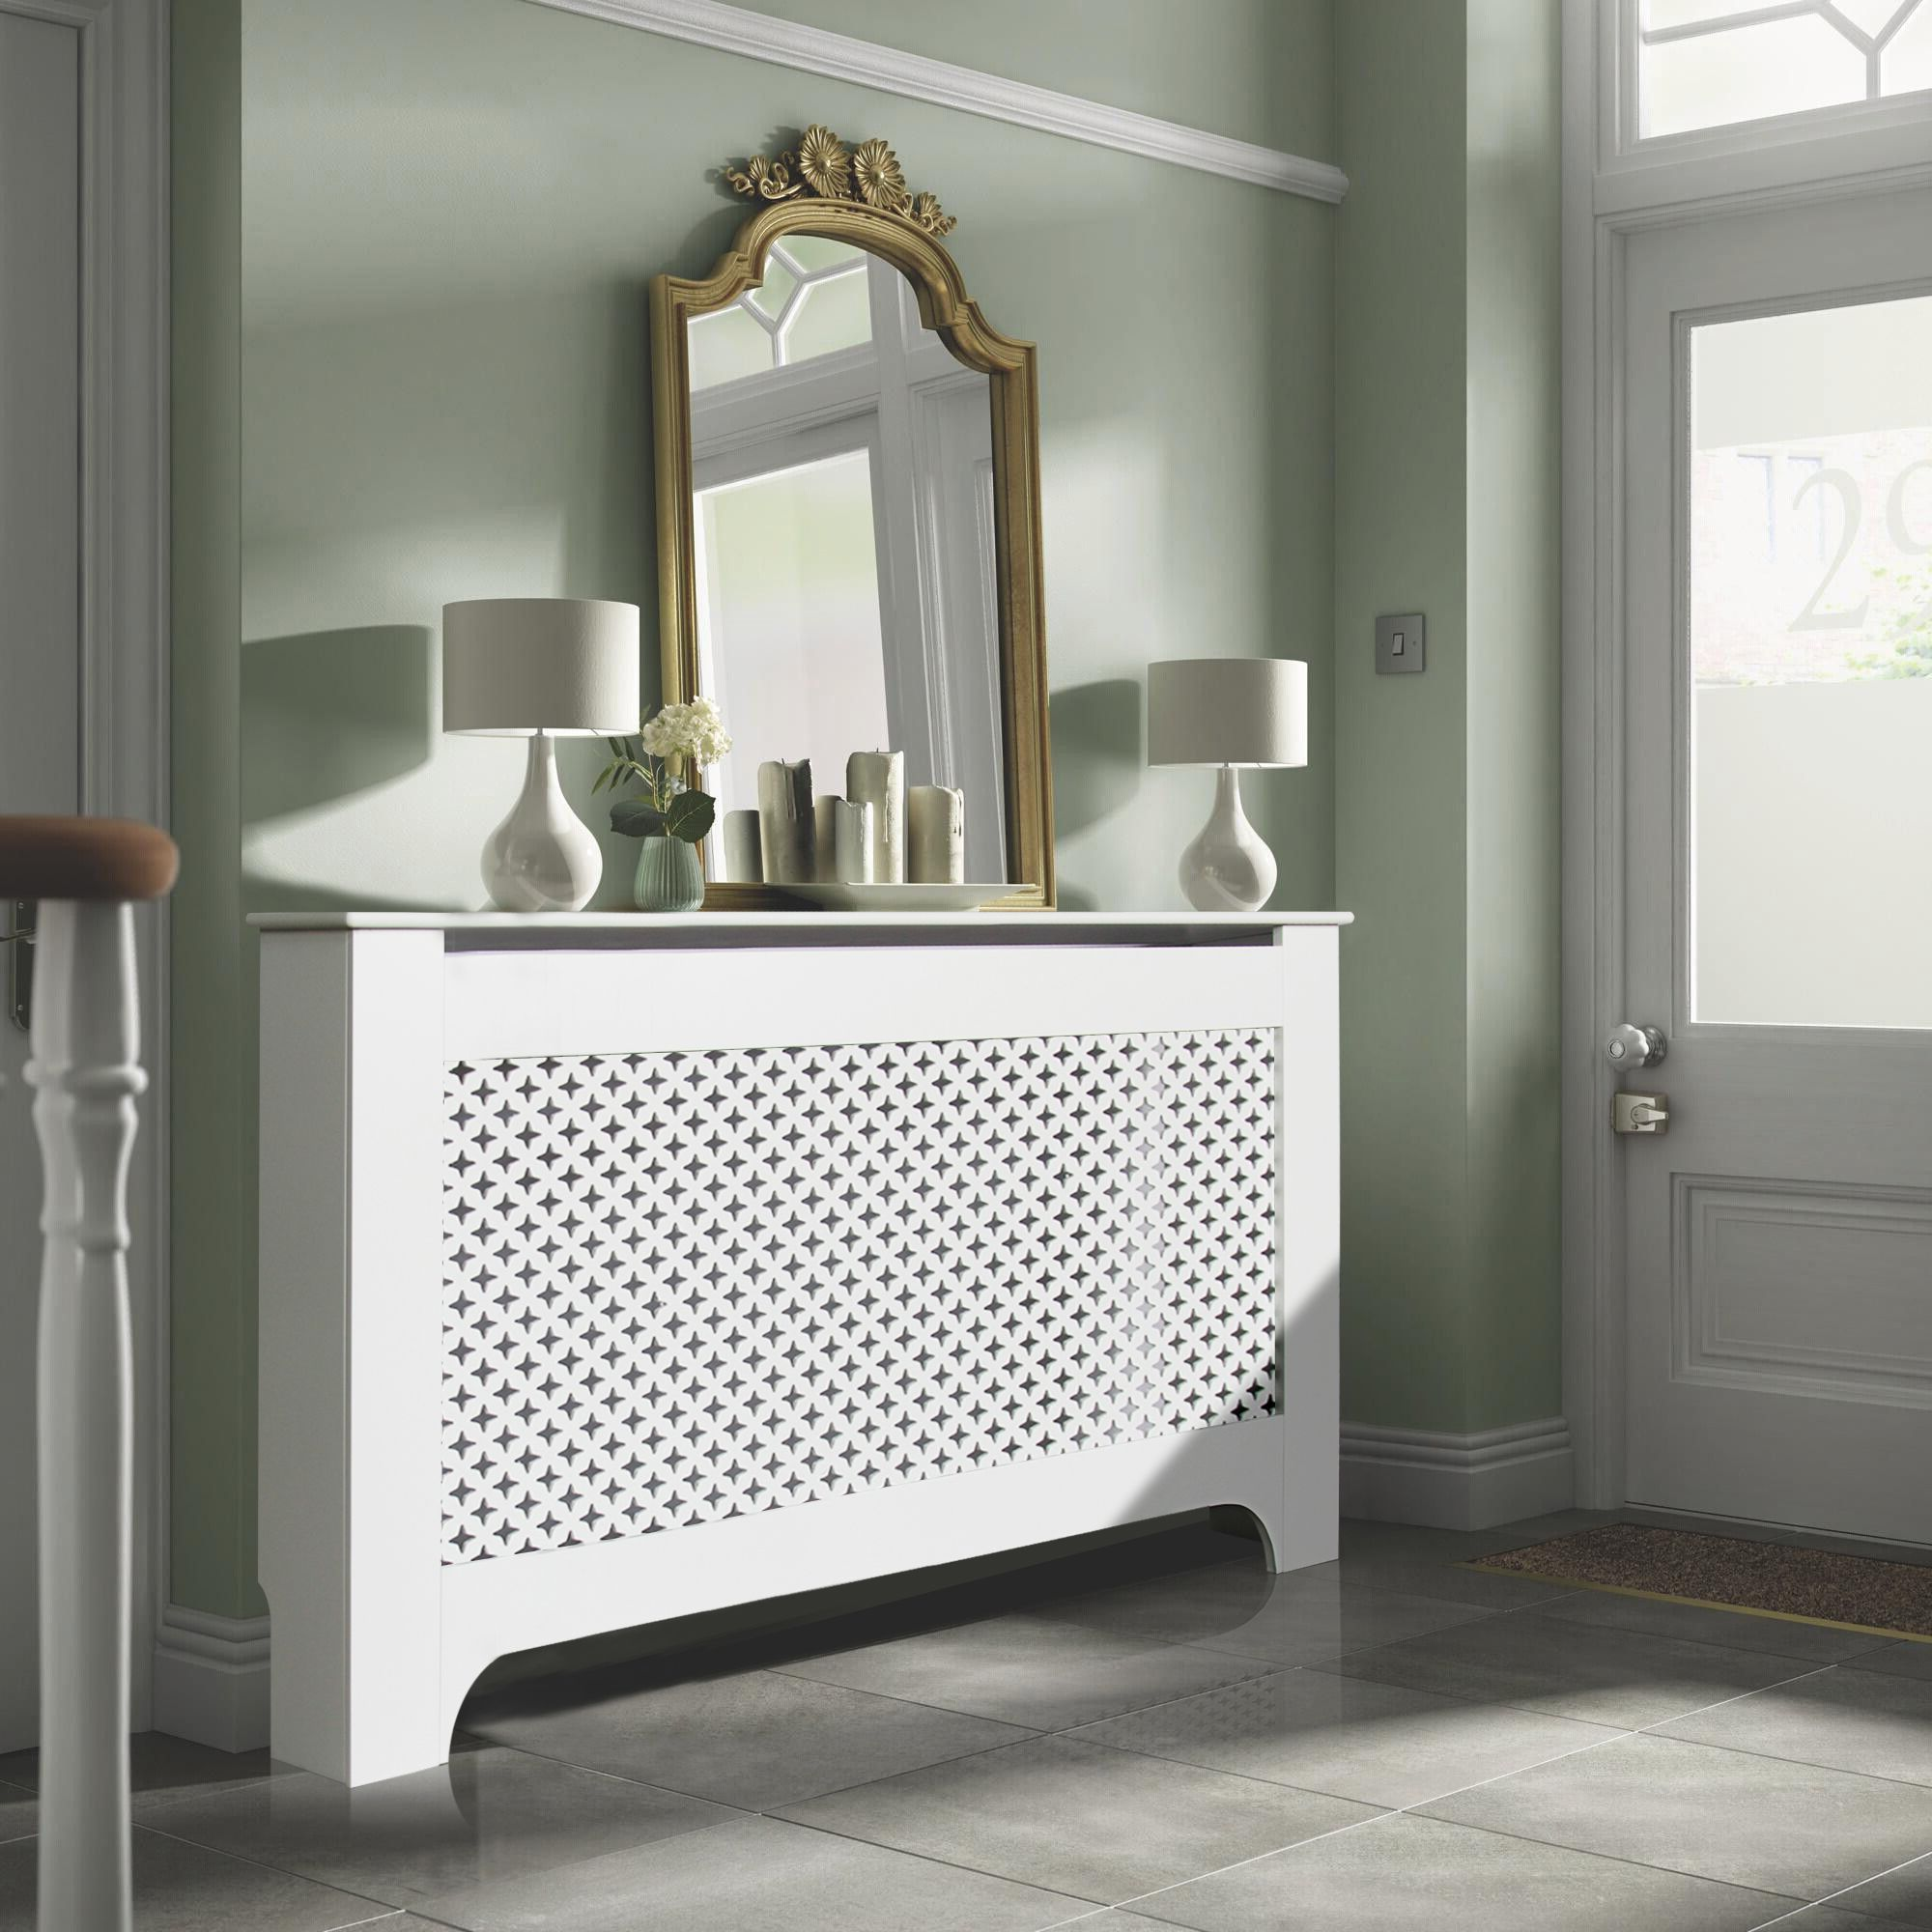 Bathroom Cabinets Uk Bq Richmond Large White Painted Radiator Cover The Ojays